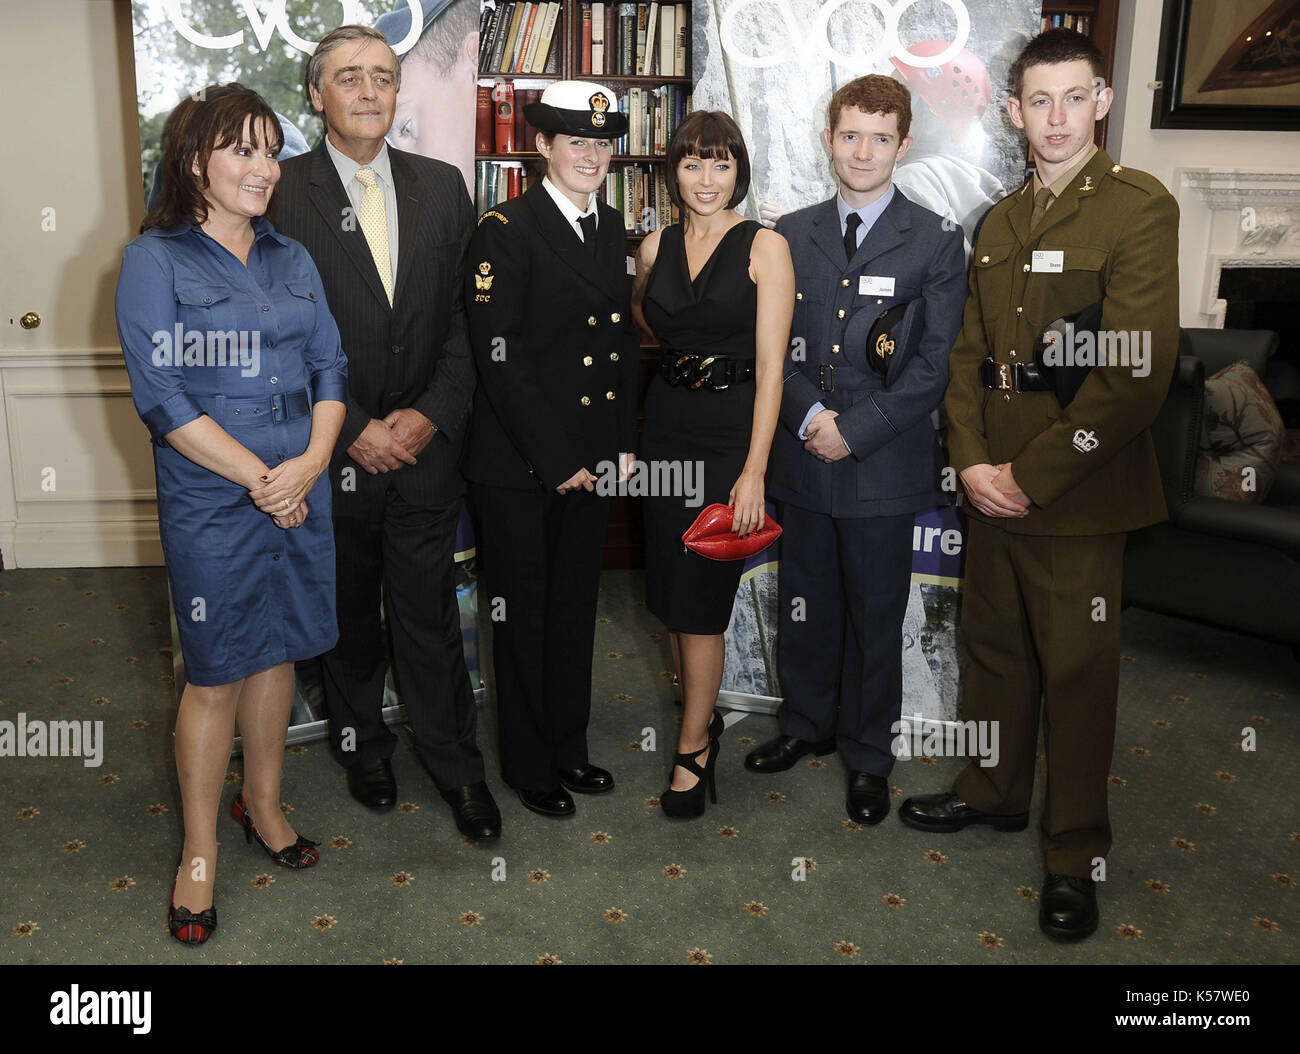 Photo Must Be Credited ©Alpha Press 072476 06/10/09 Lorraine Kelly, The Duke of Westminster and Dannii Minogue at launch of an appeal to support education of young people at the Cavalry and Guards Club in London - Stock Image